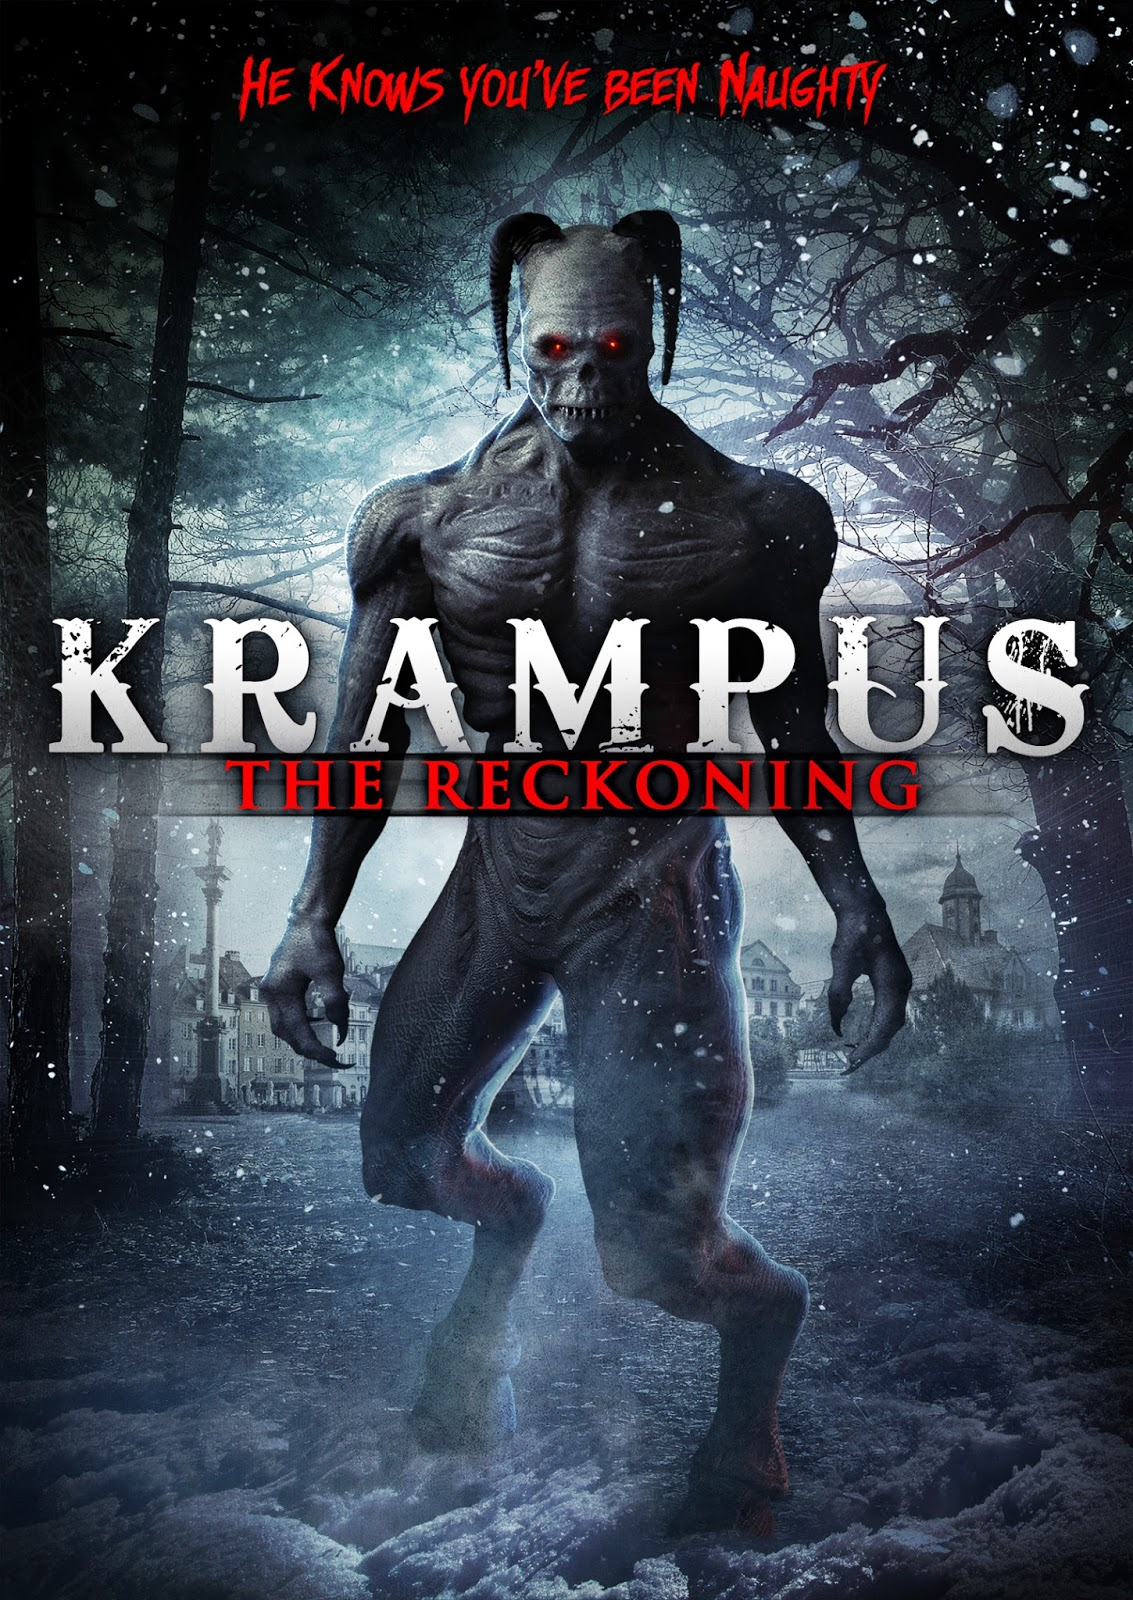 Krampus: The Reckoning 2015 – Watch Movie and TV Show pidTV HD Free